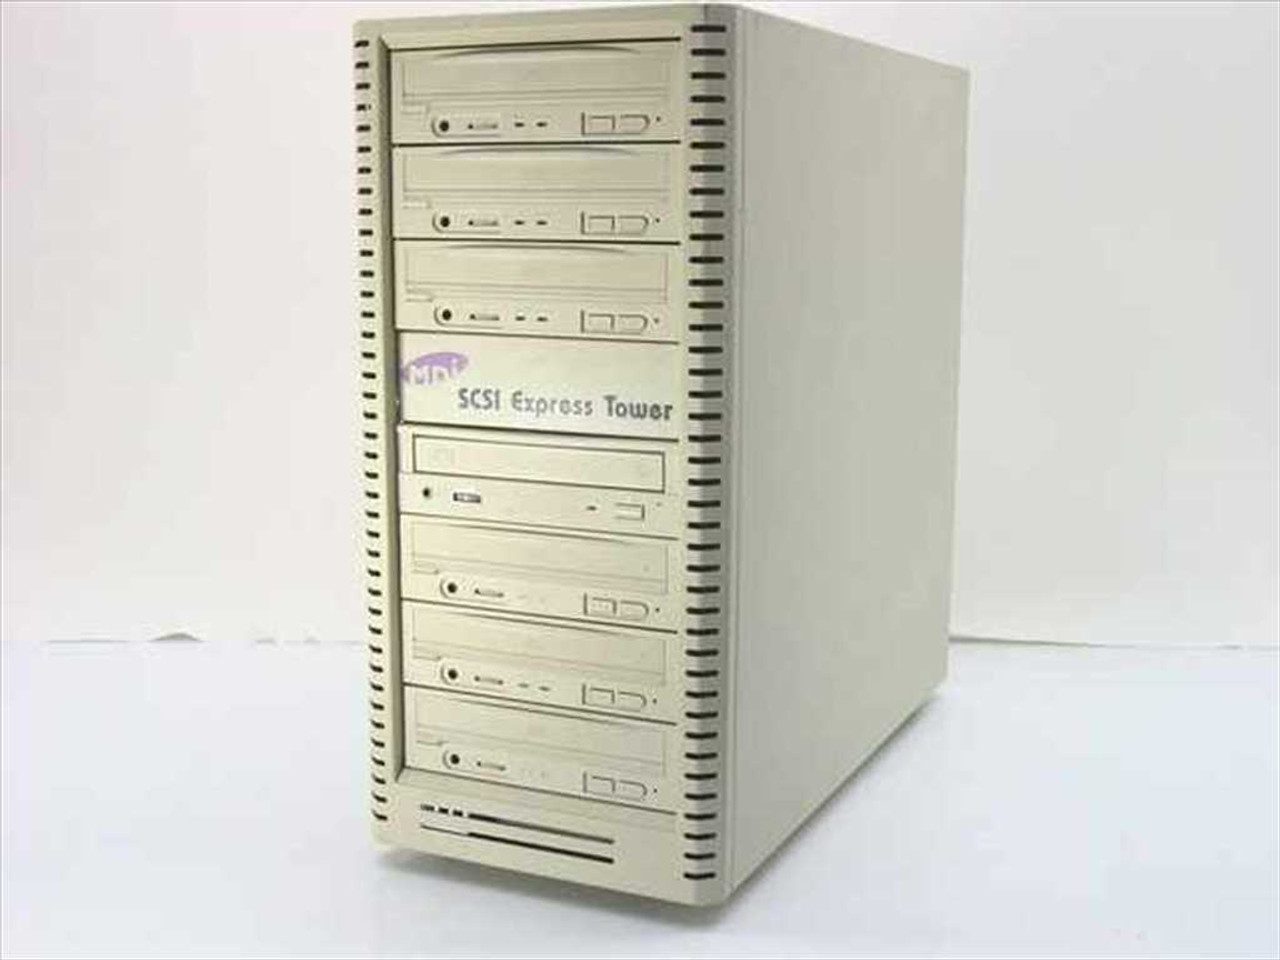 Micro design international inc t series scsi express 7 cd for Decor products international inc